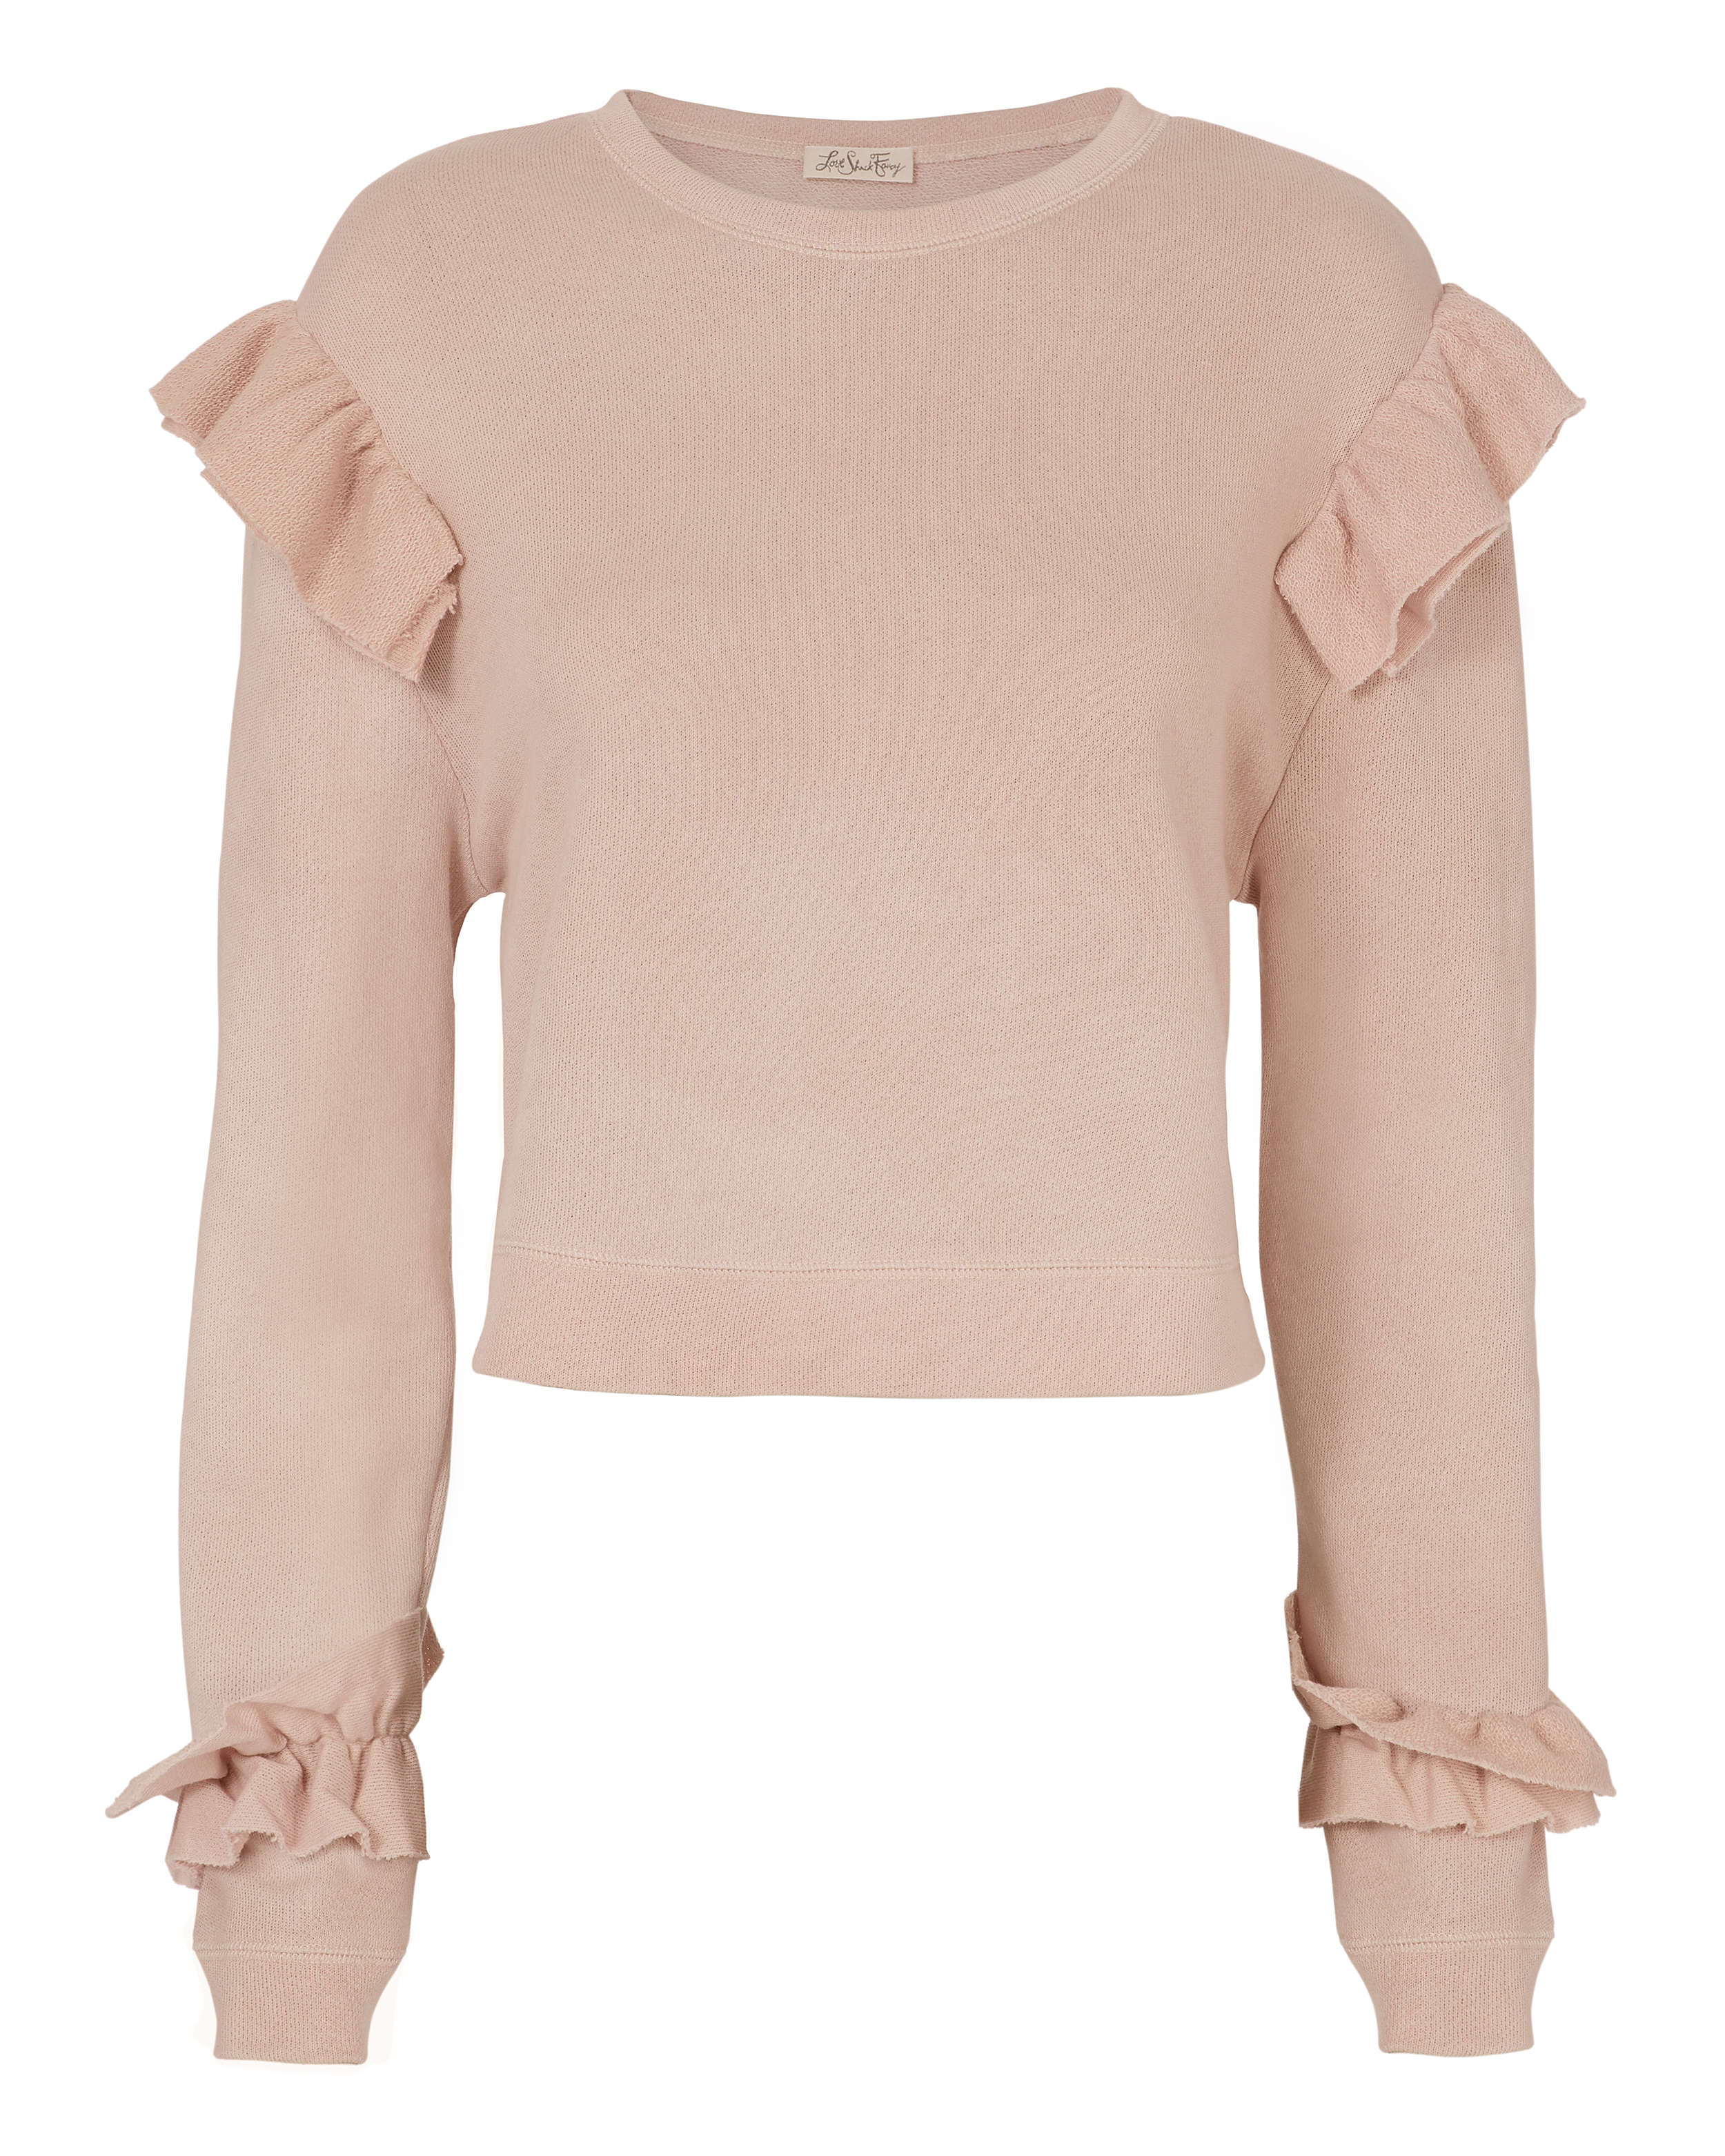 LOVE SHACK FANCY Pink Ruffle Sweatshirt